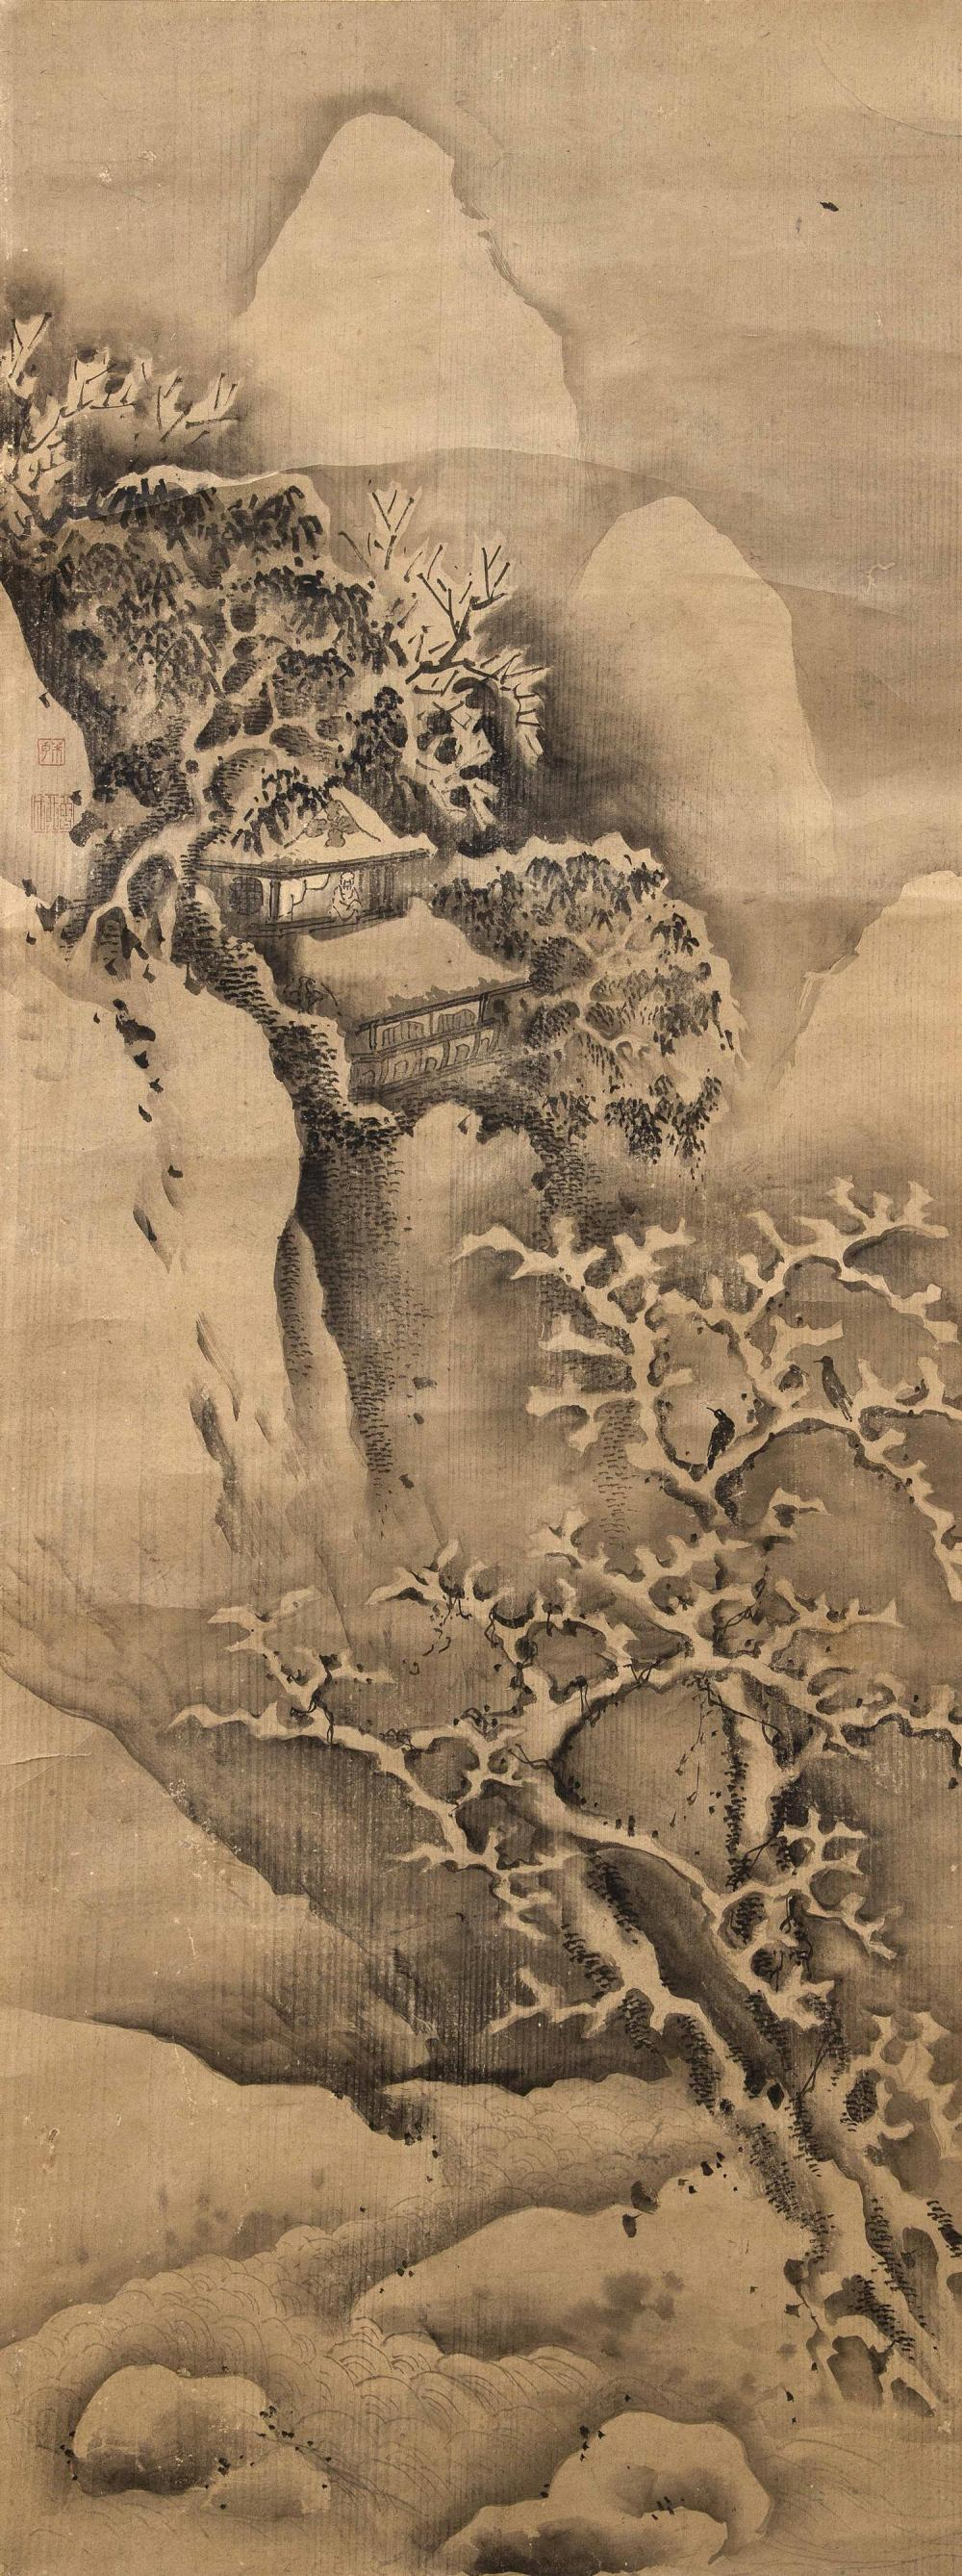 "JAPANESE SCROLL PAINTING ON PAPER Depicts a sage watching birds in a snow-covered tree, and mountains in the background. 51"" x 19.25..."